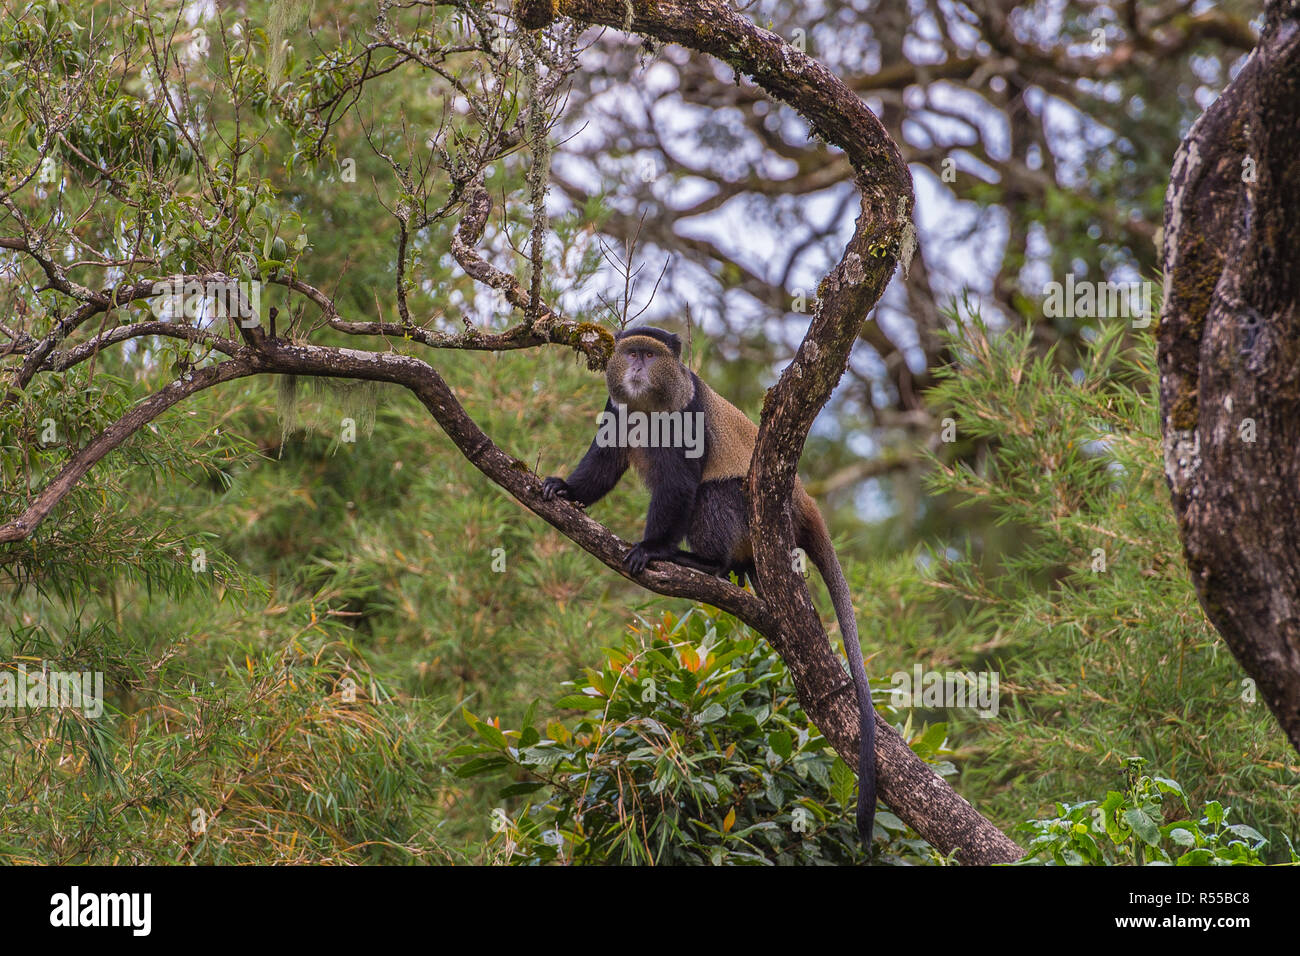 Golden Monkey,  Virunga volcanic mountains, Central Africa - Stock Image